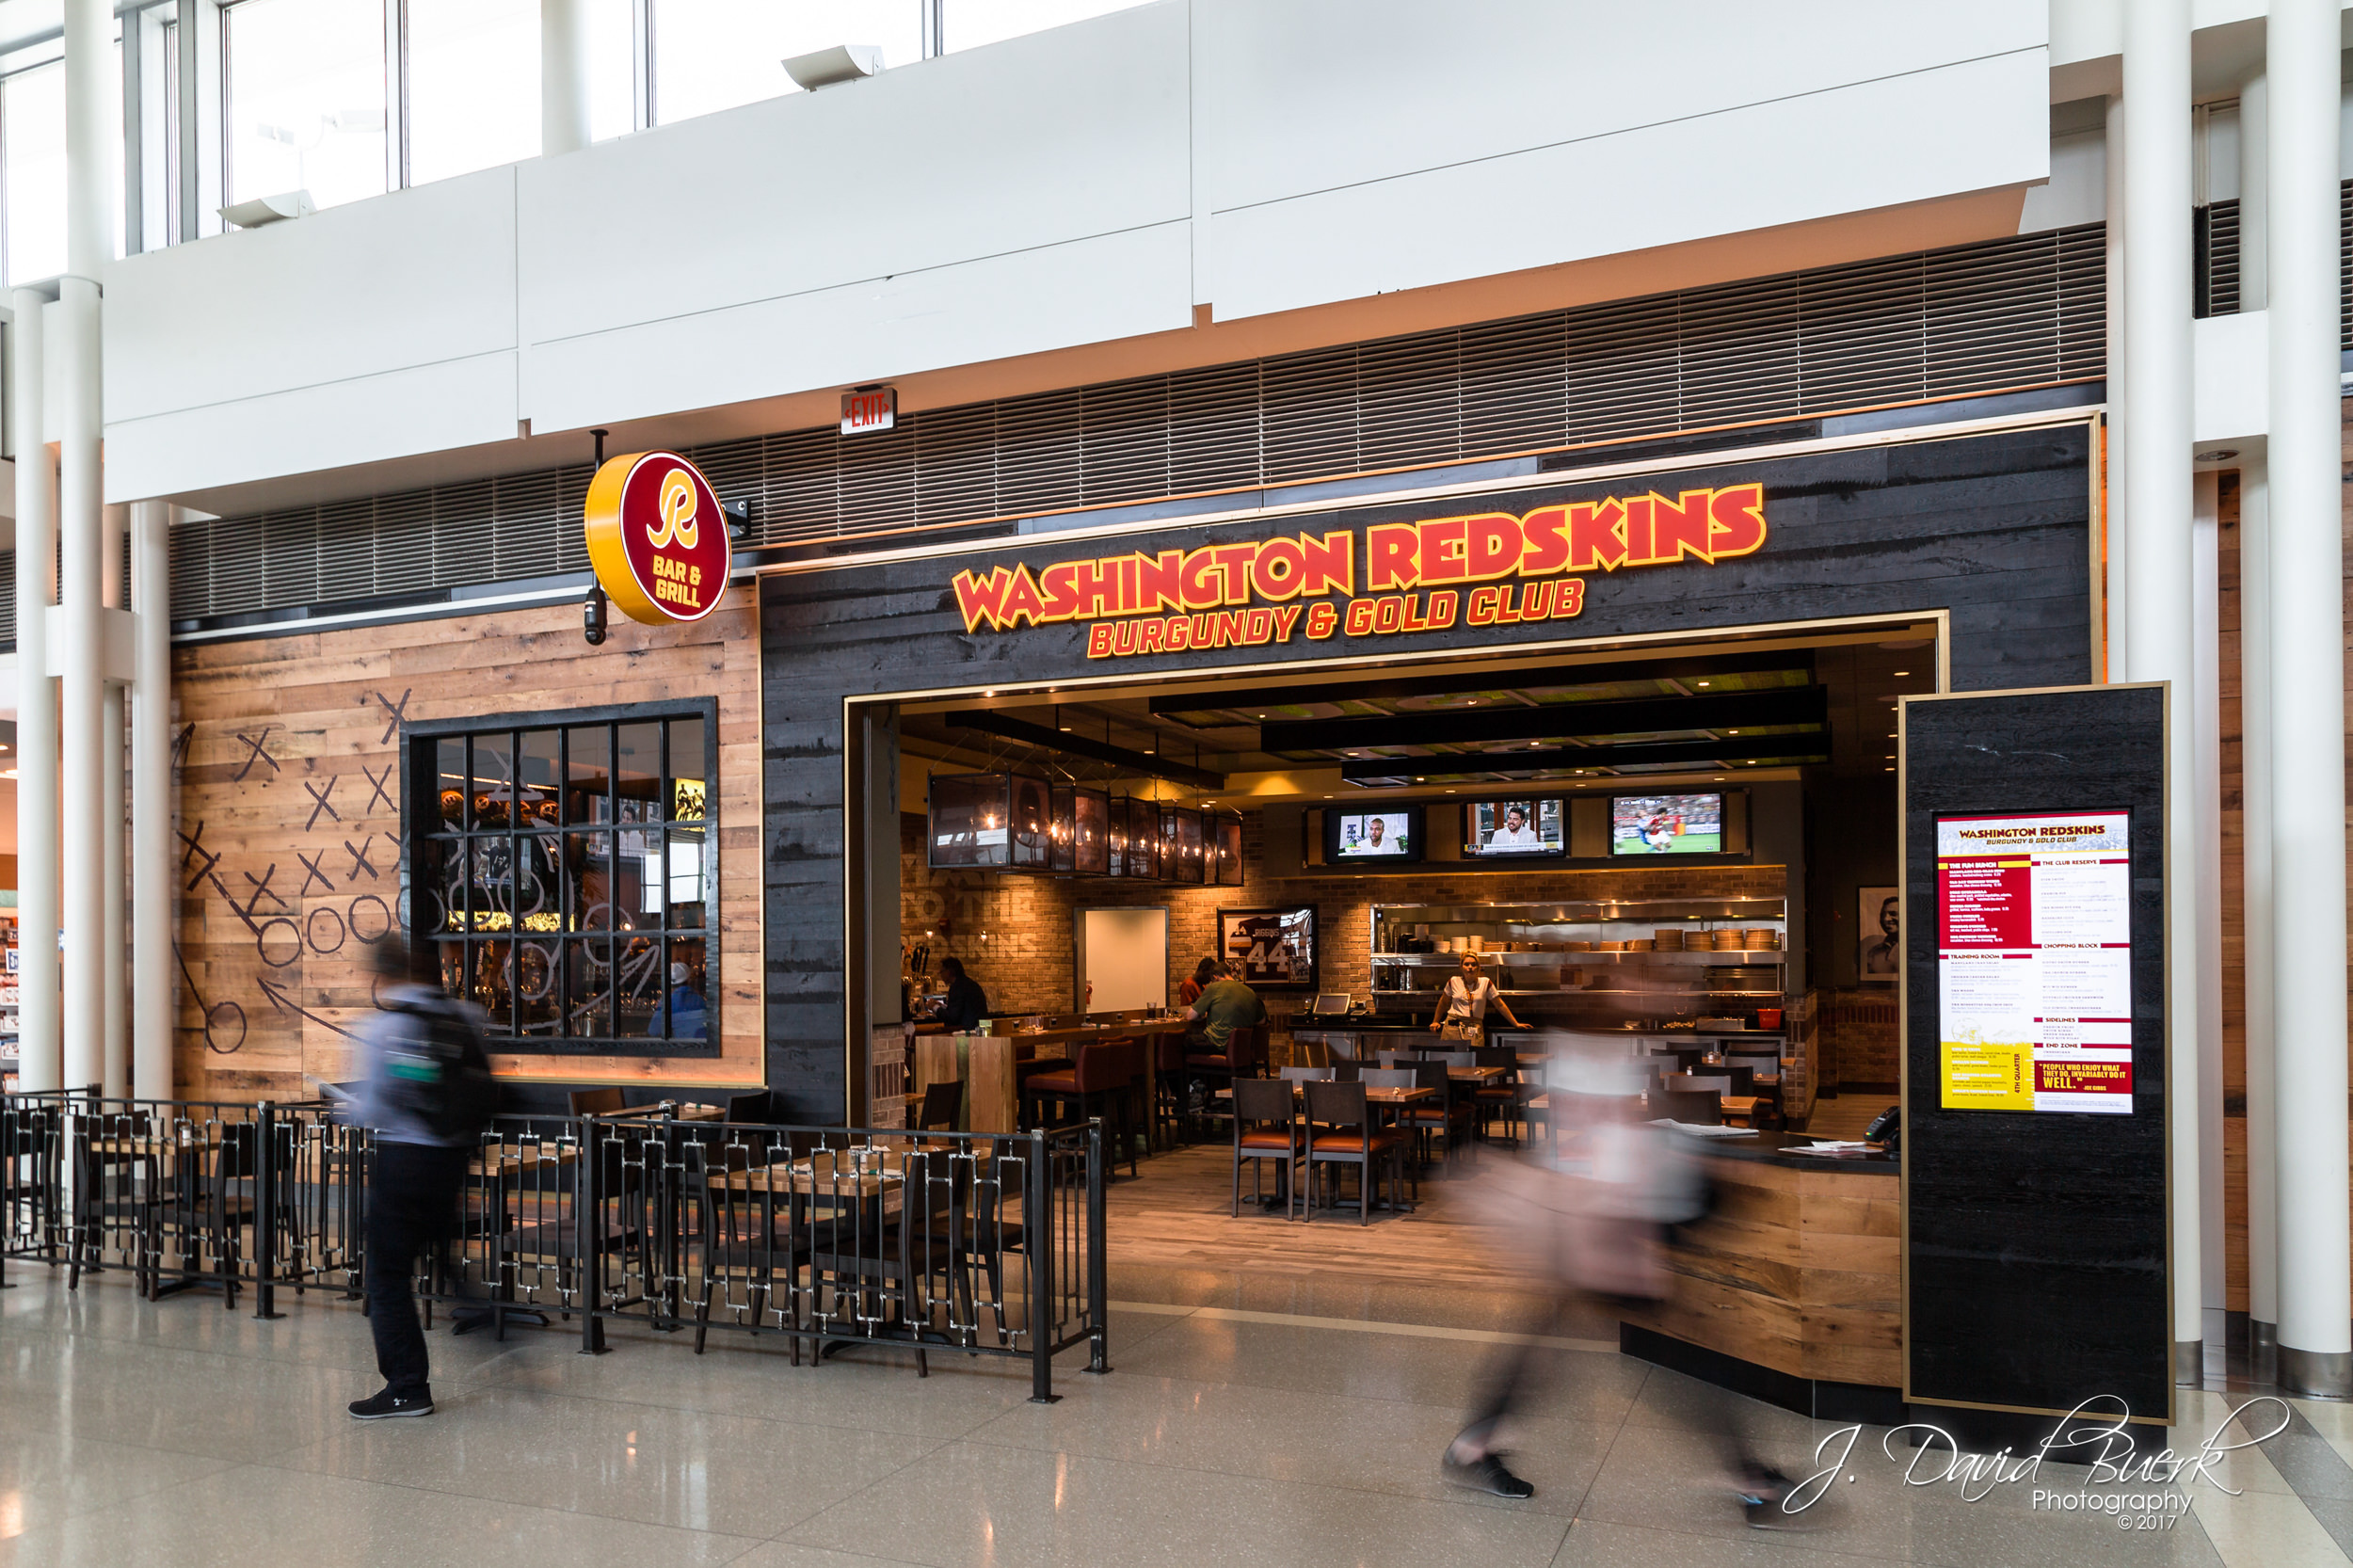 The Washington Redskins Burgundy & Gold Club restaurant and bar at Washington Dulles International Airport.